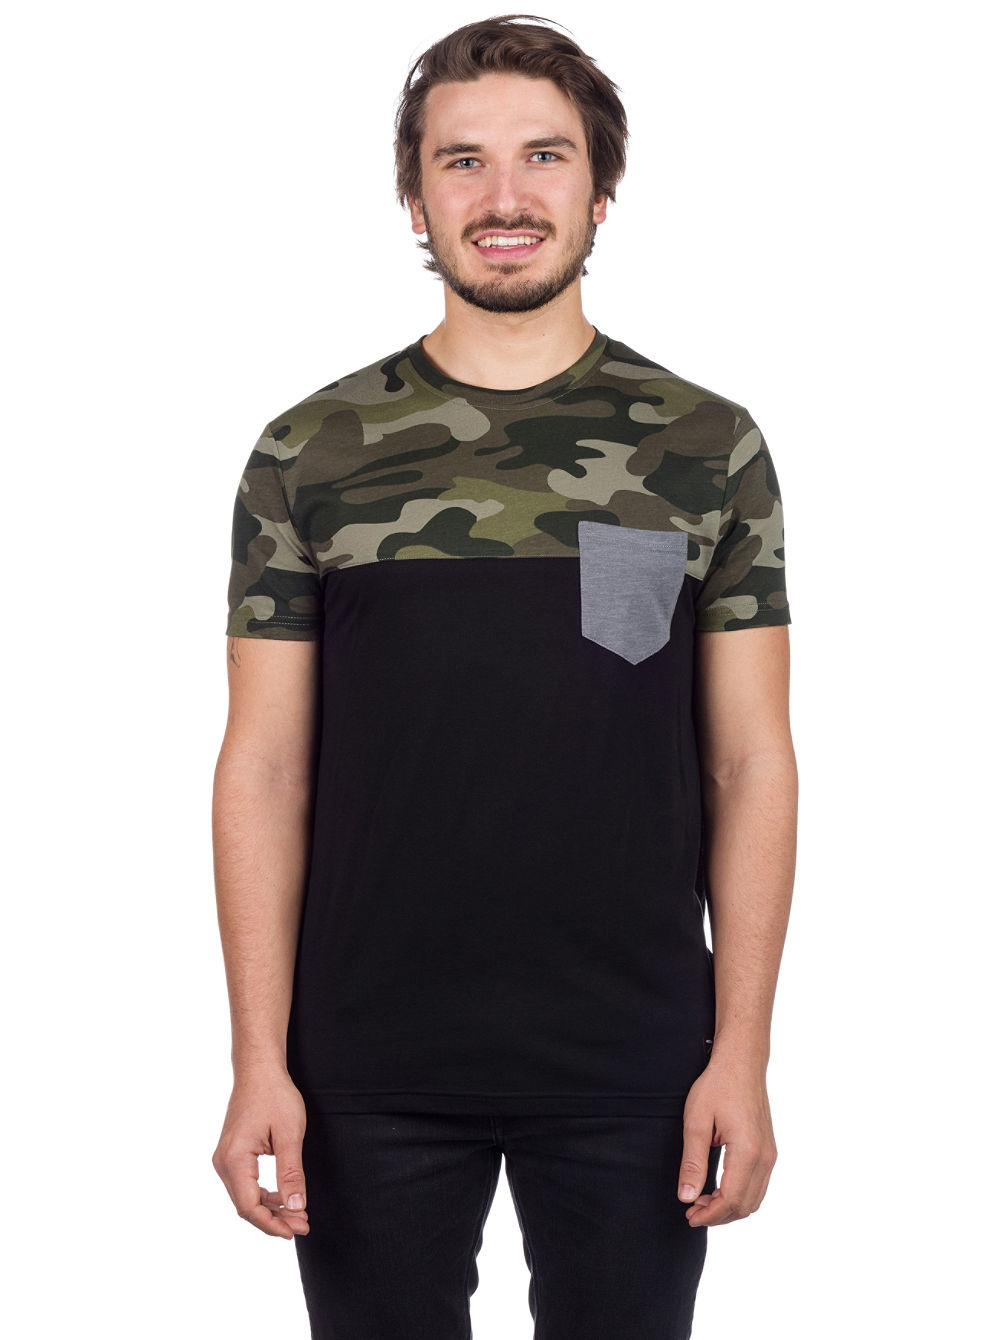 Kotti Pocket T-Shirt